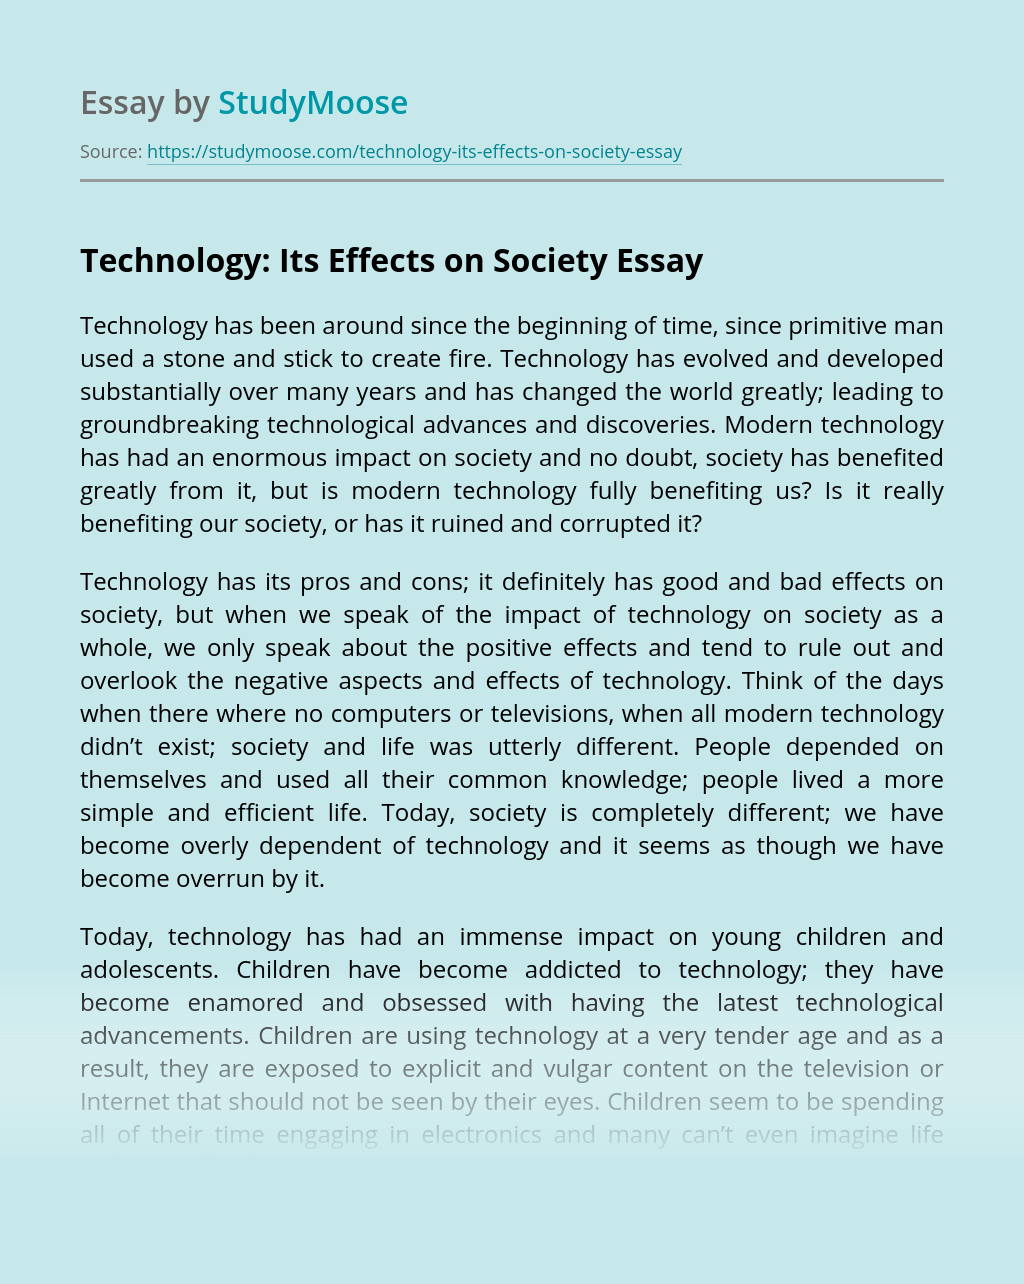 Technology: Its Effects on Society